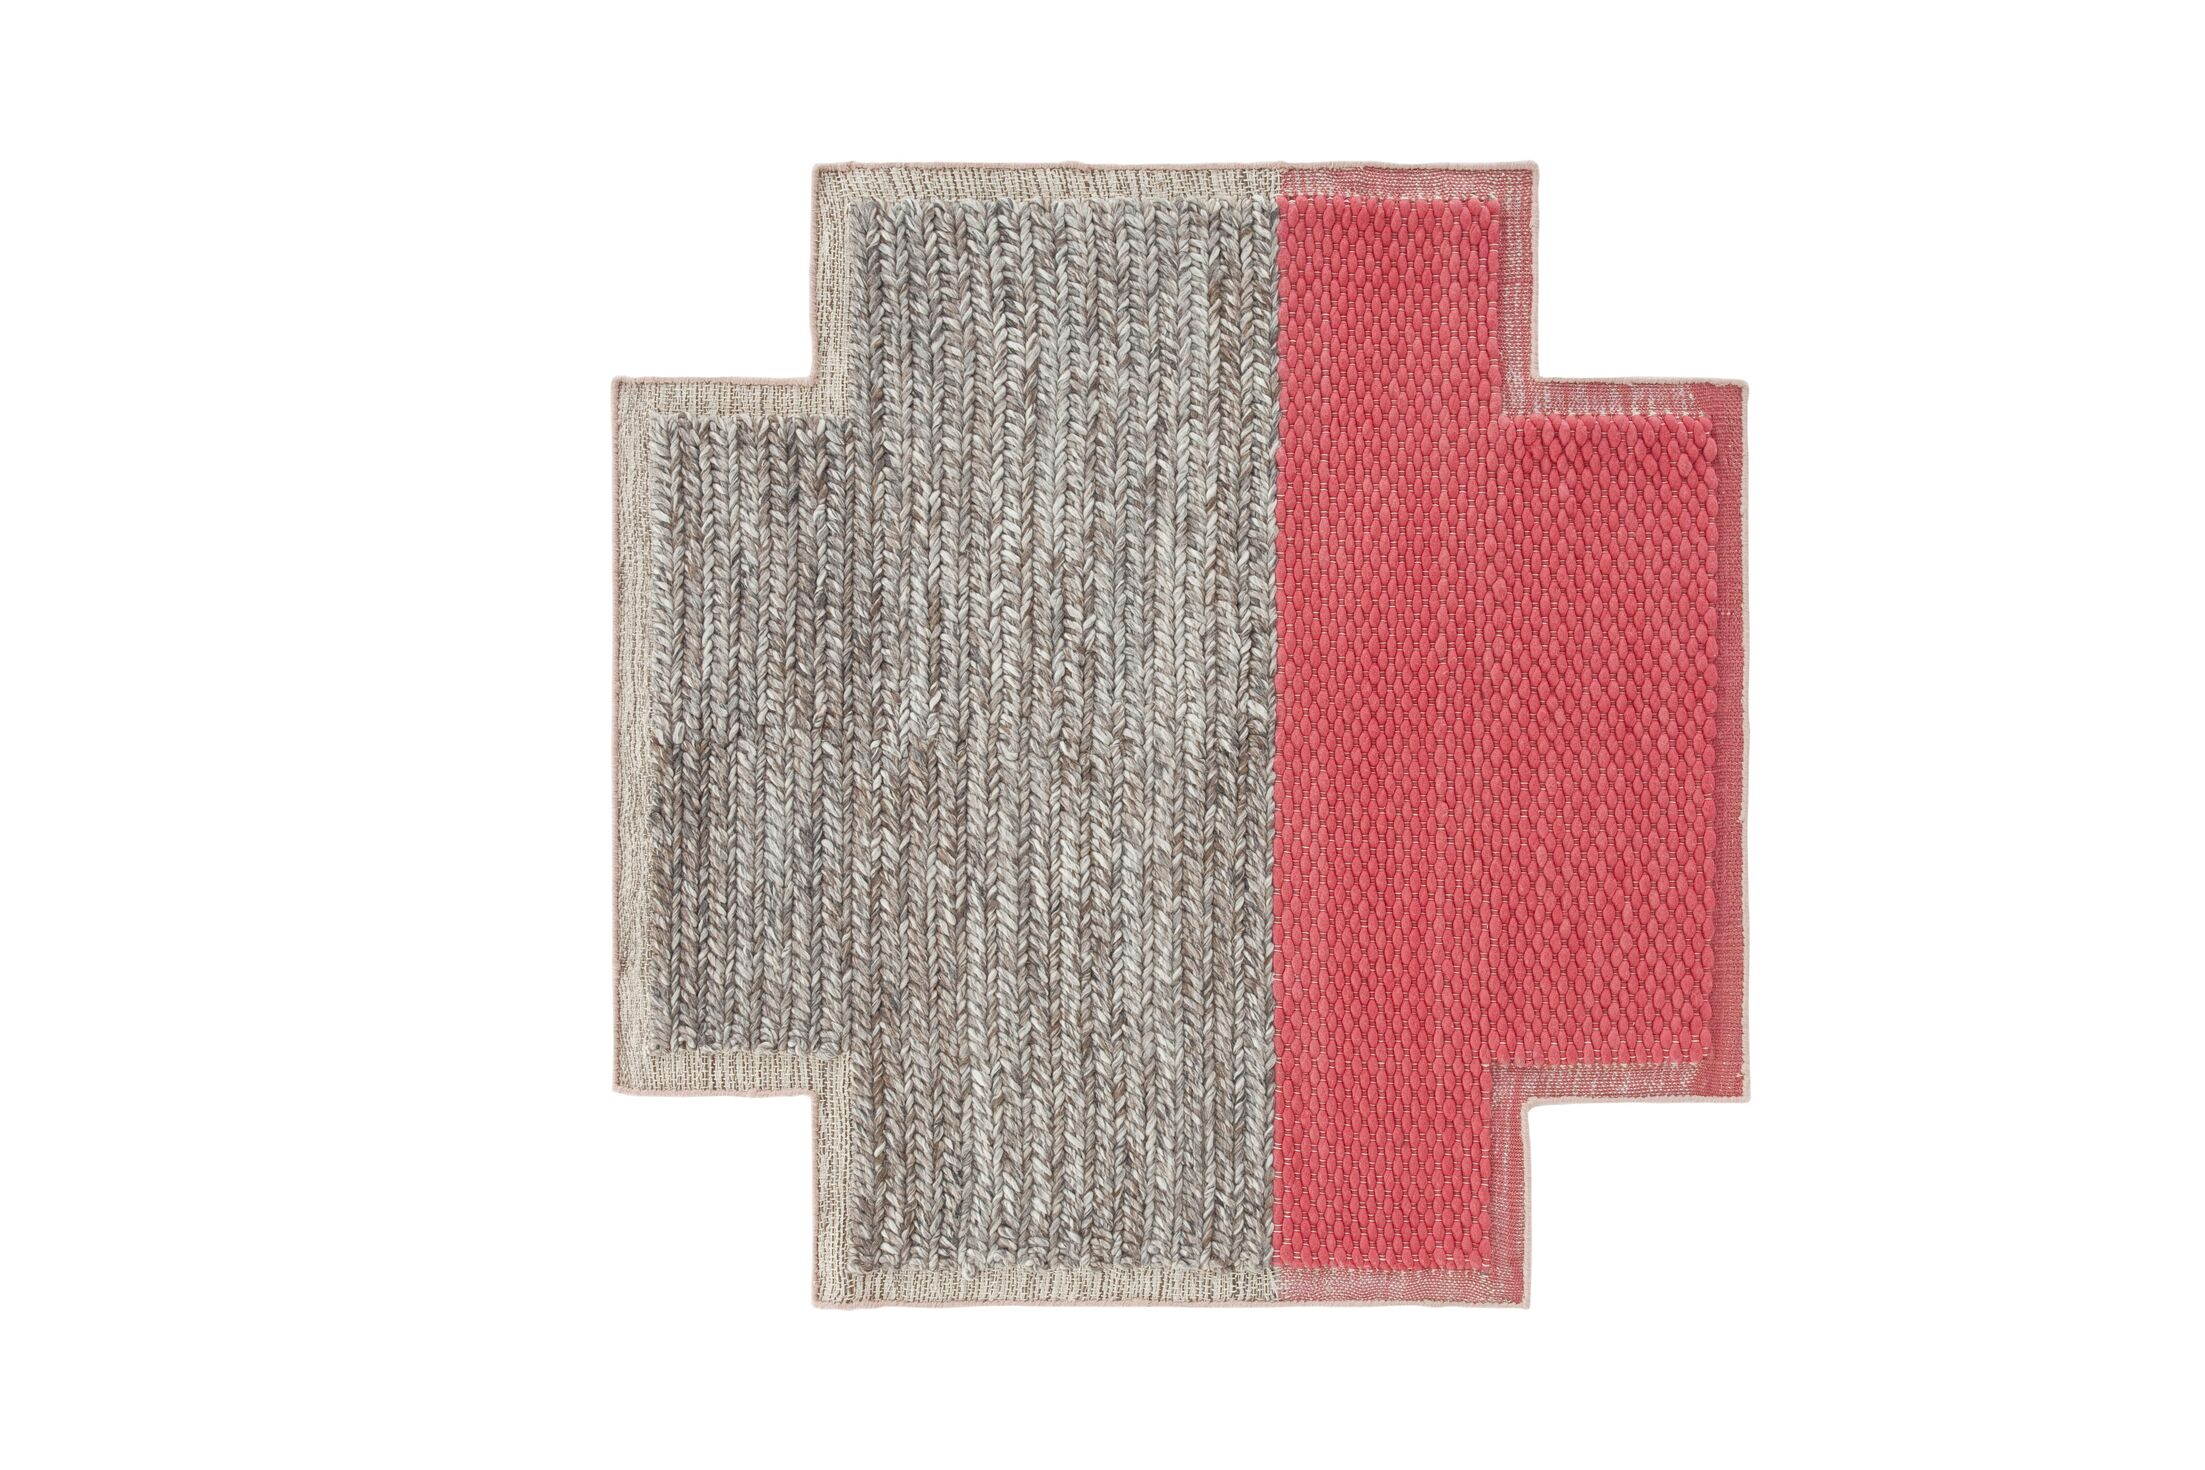 Mangas Space Plait Coral Area Rug Rug Size: Square 5'3